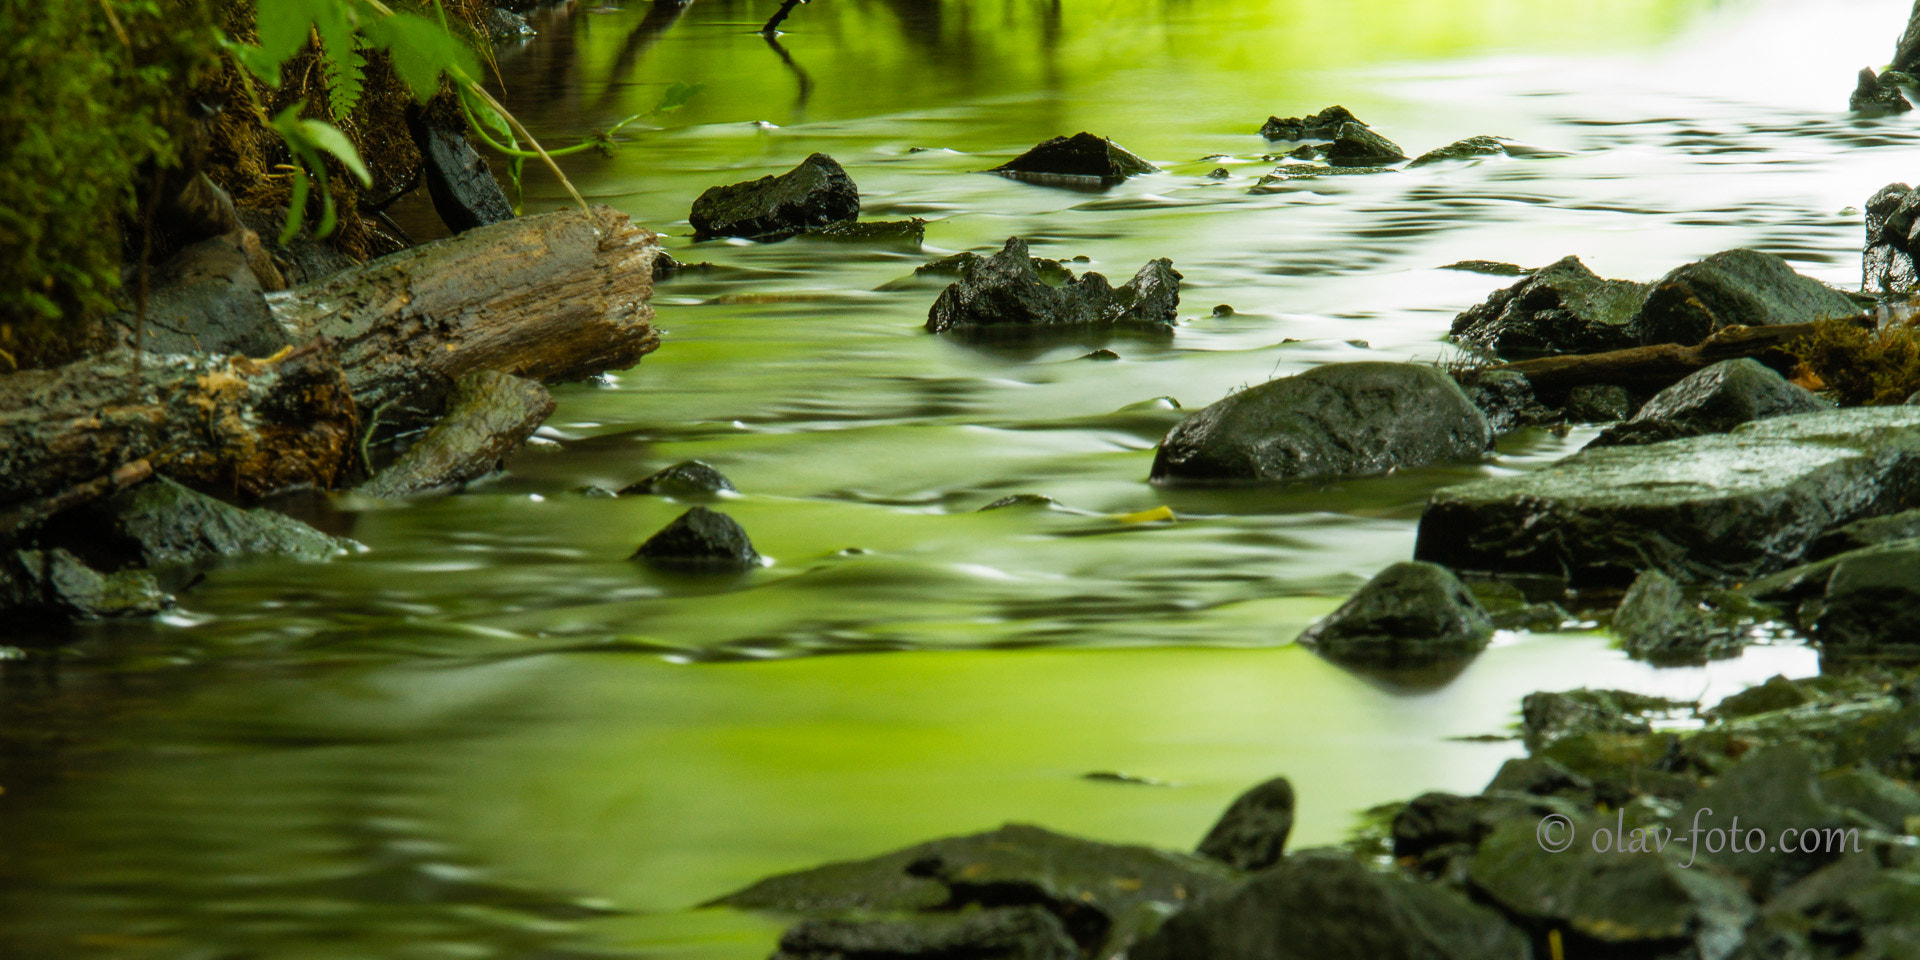 Photograph Green River by Olav Eikeland on 500px